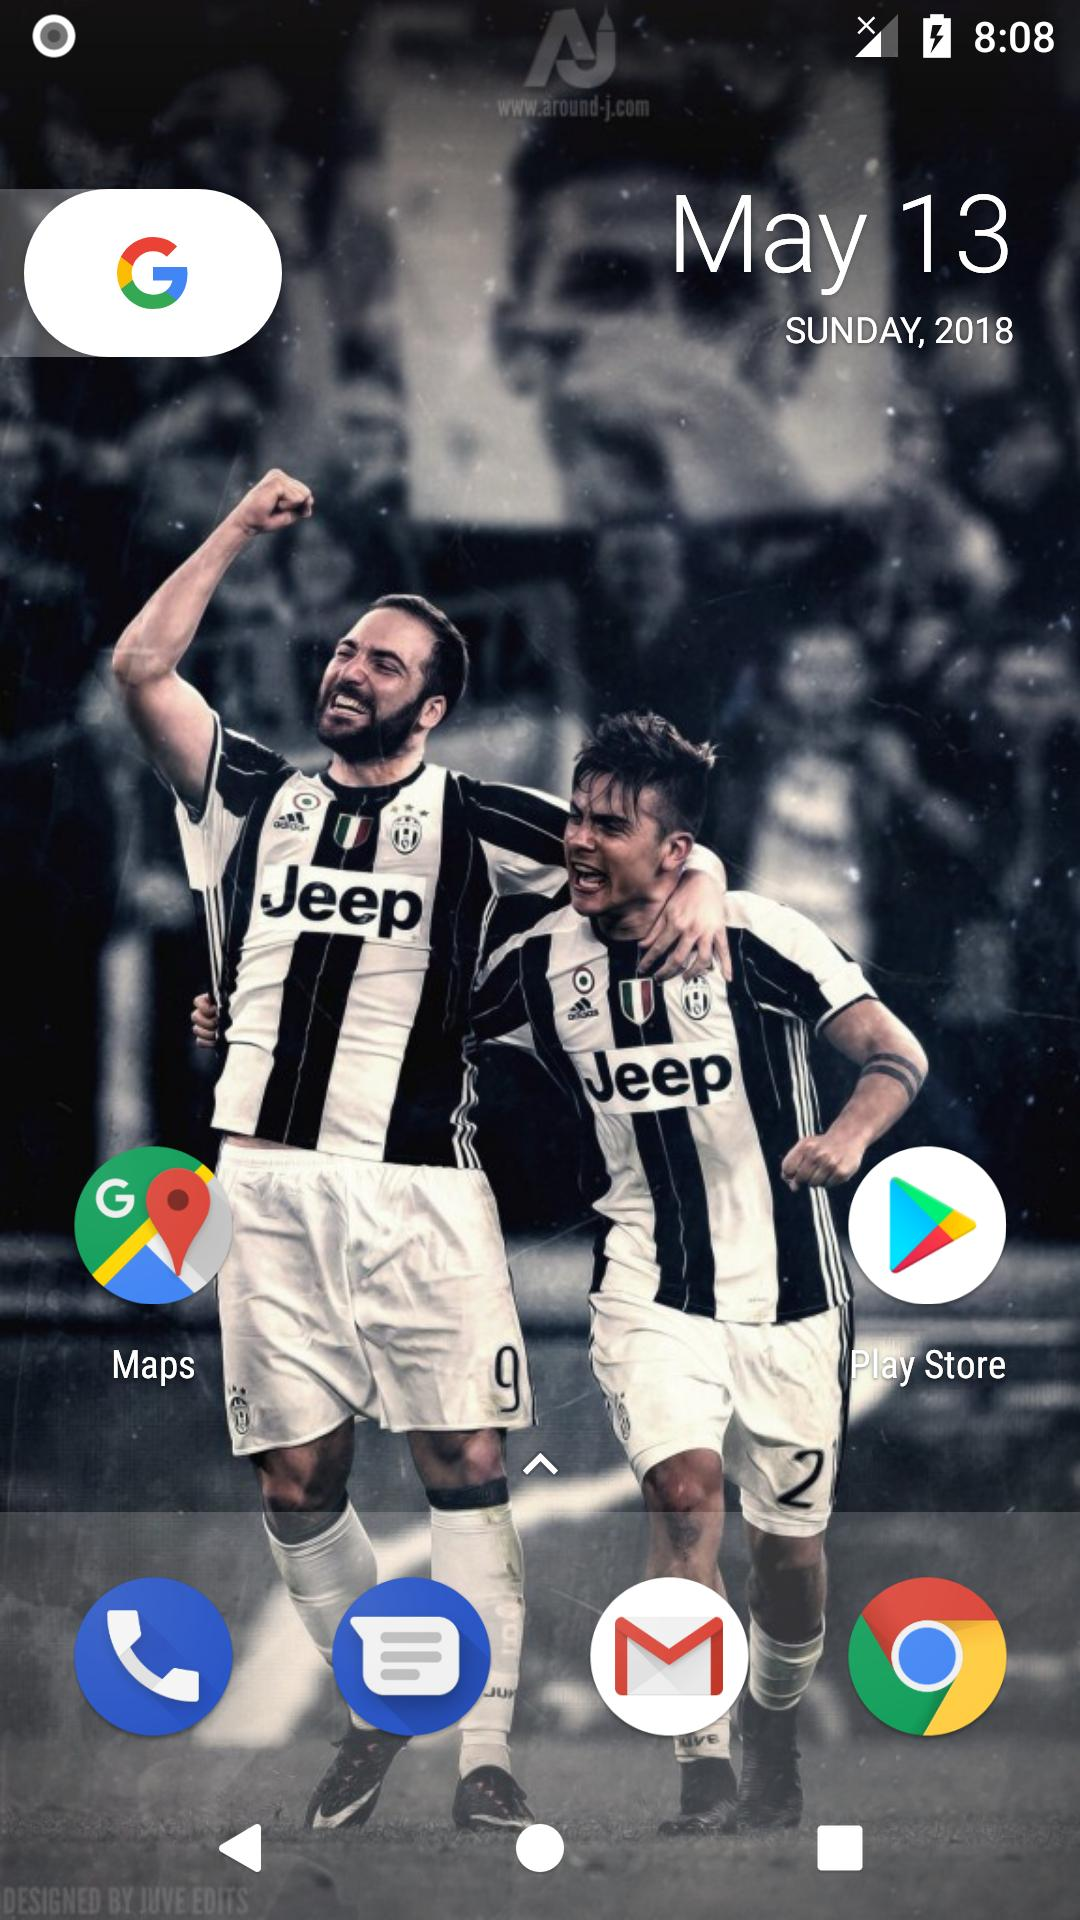 Paulo Dybala Wallpaper 4k For Android Apk Download